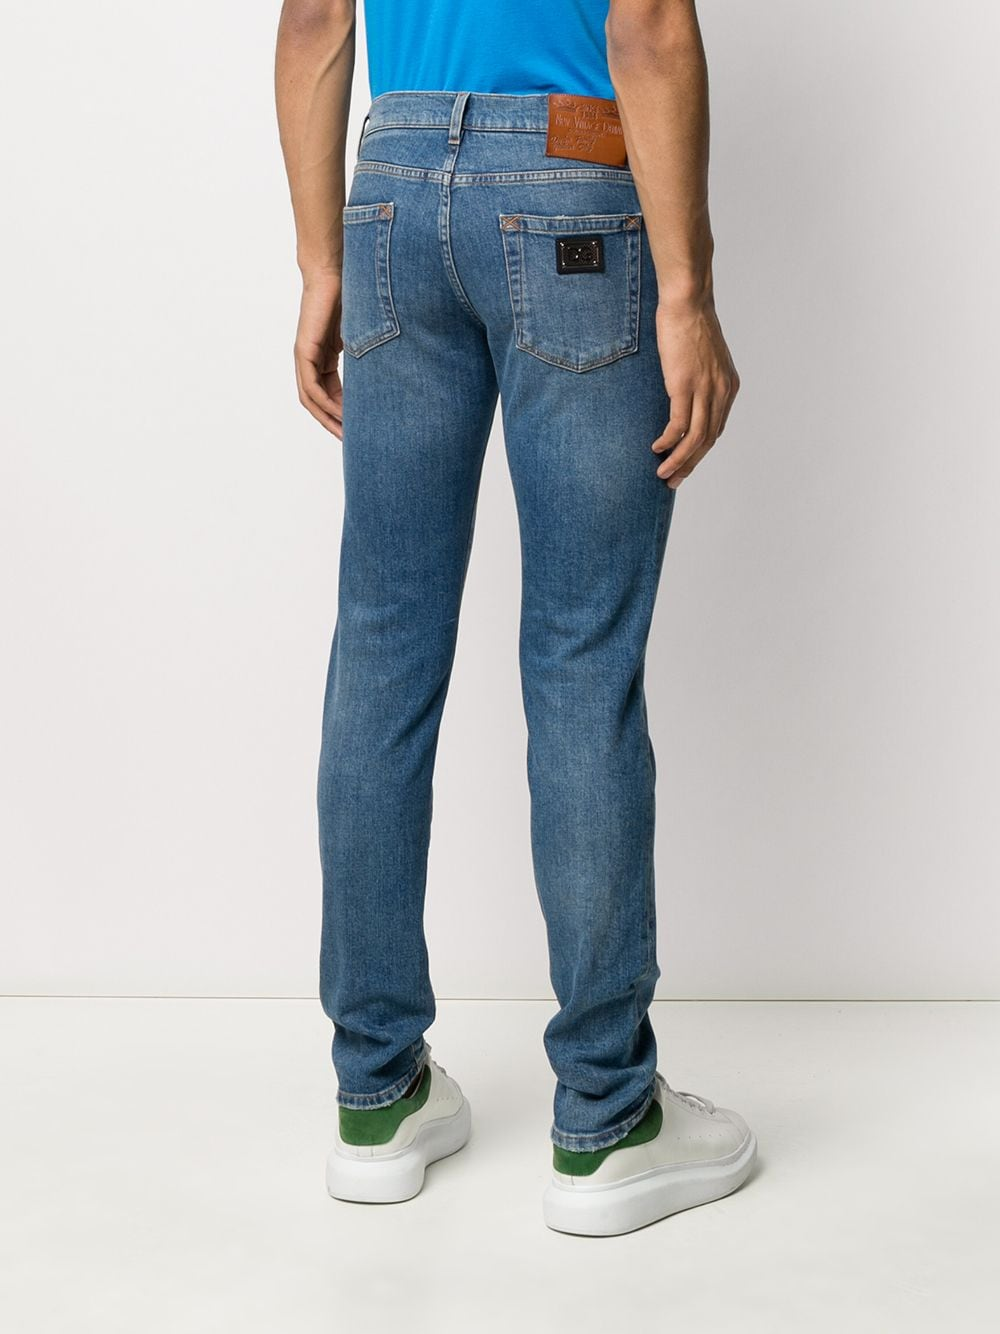 stonewashed cotton blue jeans with back DG logo plaque DOLCE & GABBANA |  | GY07LD-G8BY8S9001